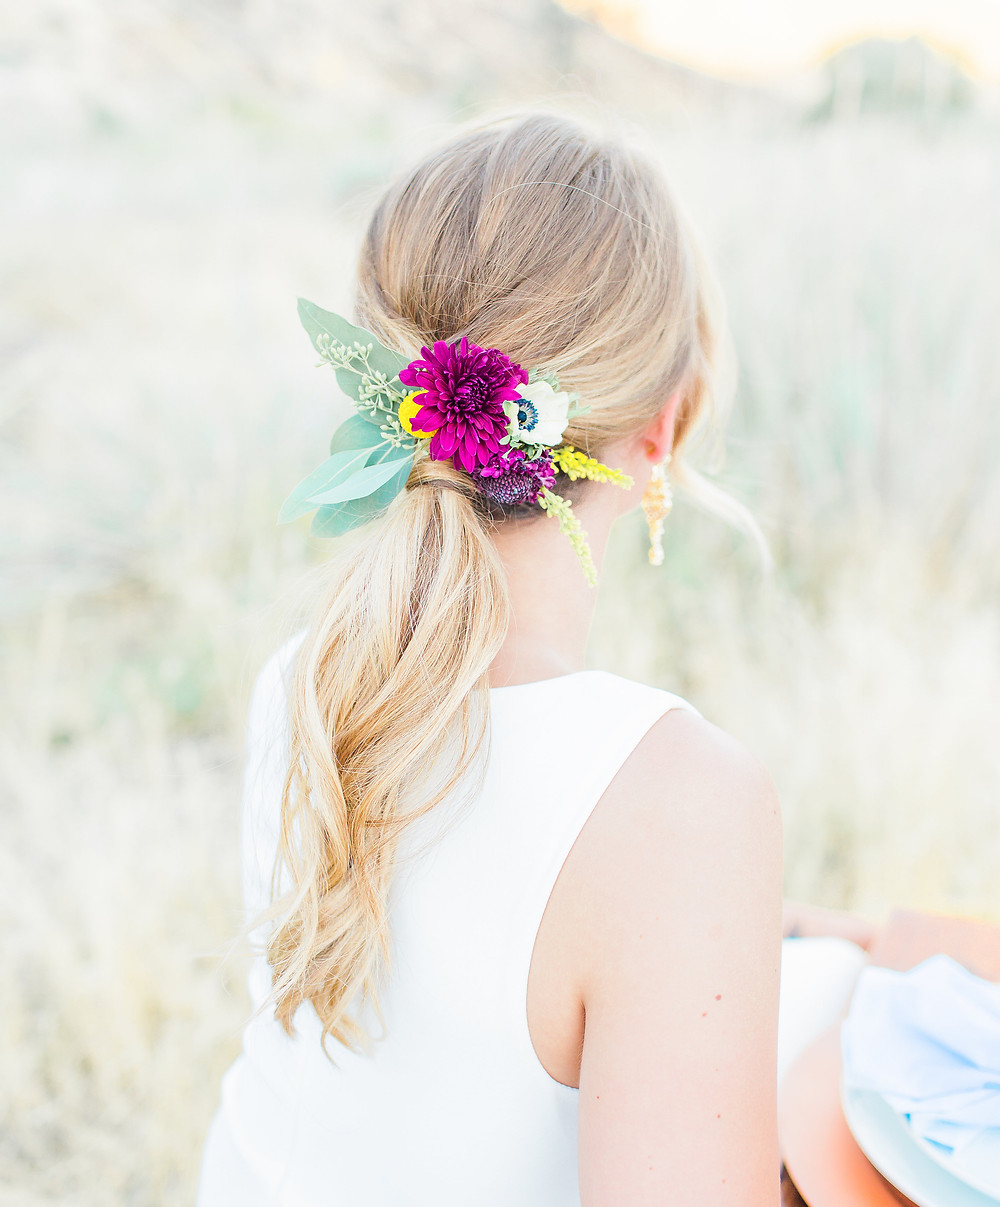 Bridal hair with burgundy, yellow, and white flowers.